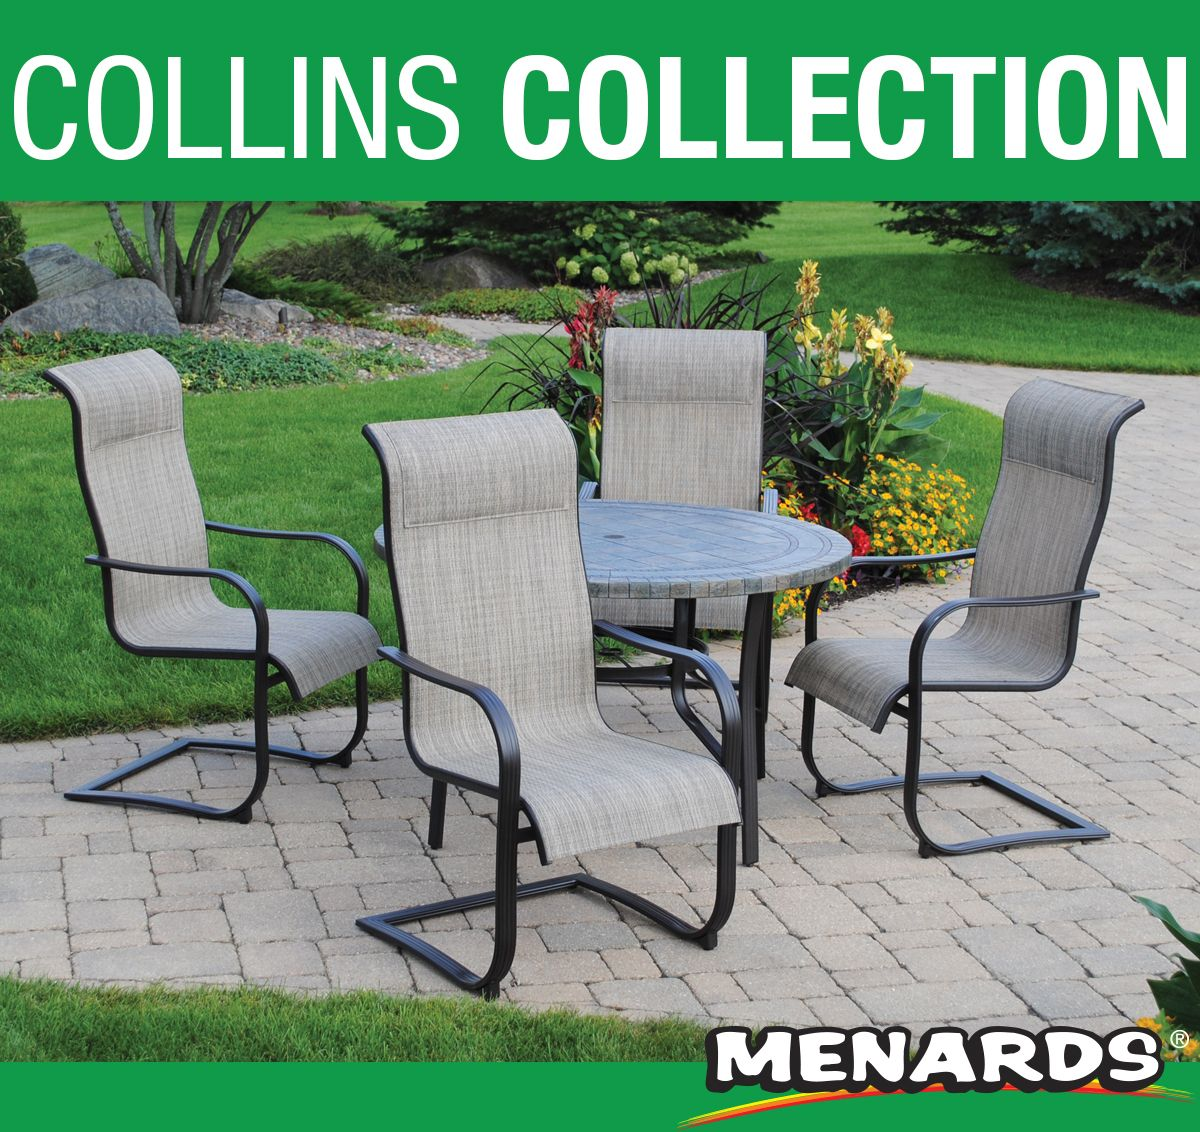 Dine With Friends And Family Outdoors With The 5 Piece Backyard Creations Collins Dining Patio Set Th Patio Furniture Collection Patio Set Backyard Creations